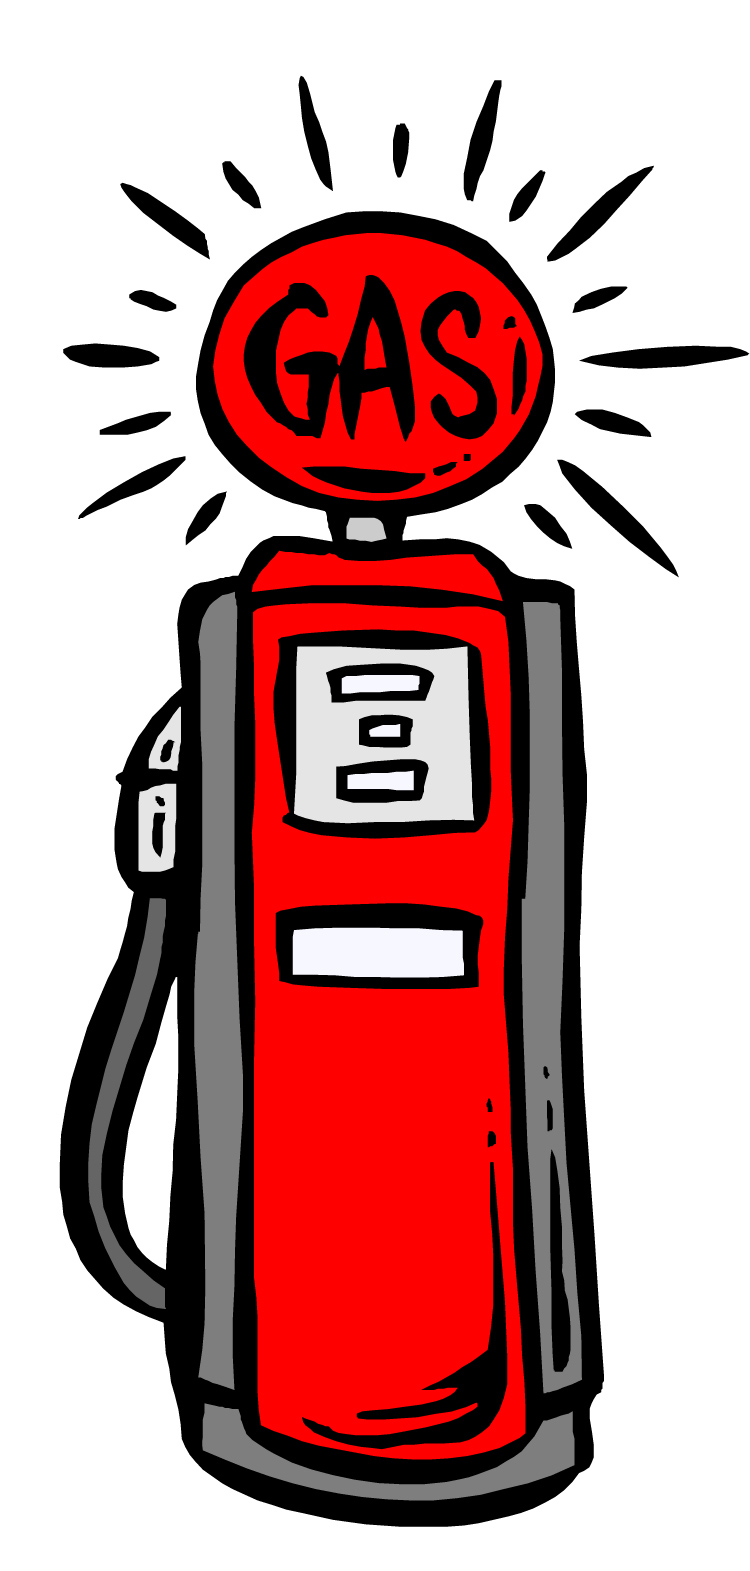 10 Cartoon Gas Pump Free Cliparts That You Can Download To You